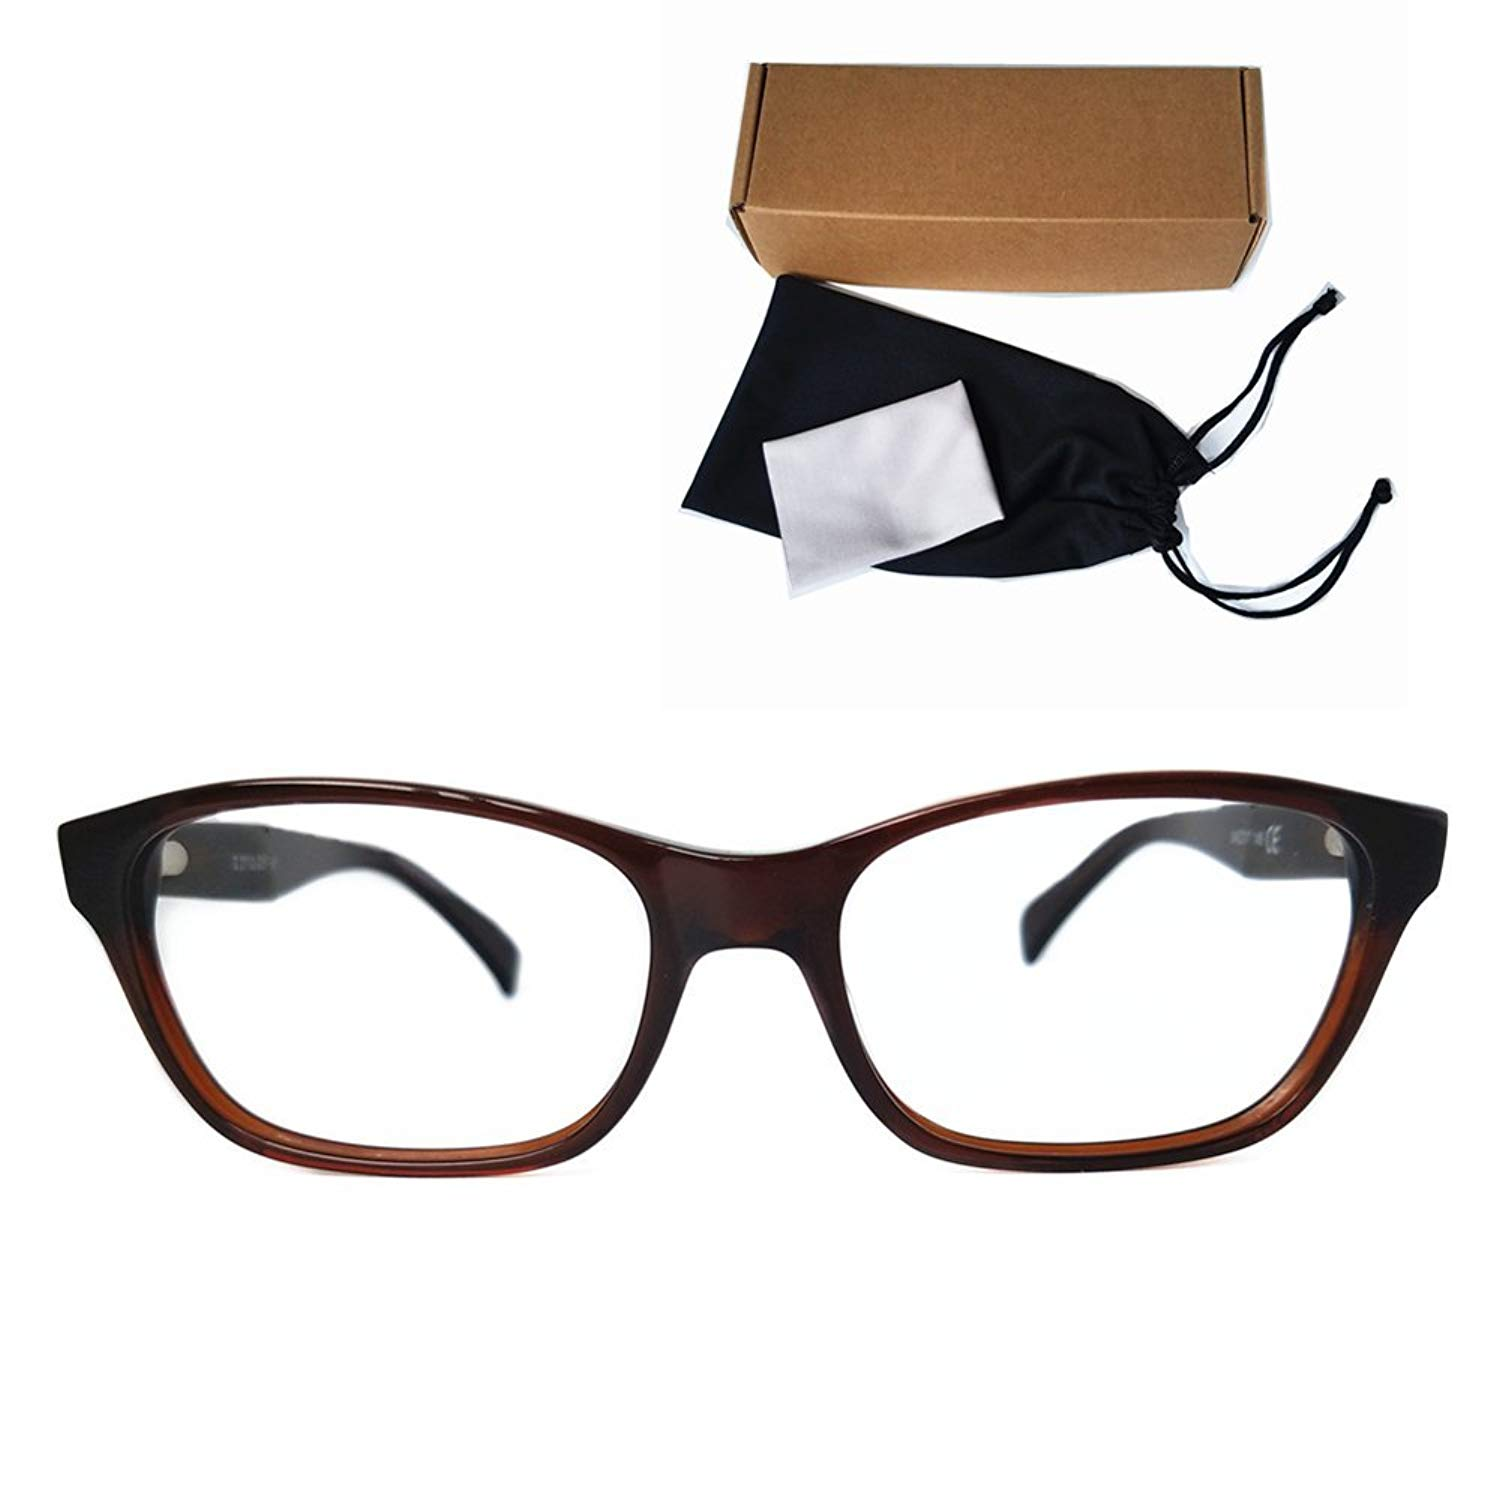 a27cc9f988 Get Quotations · Casual Fashion Squared Acetate Frames Design Clear Eye  Glasses Geek -237